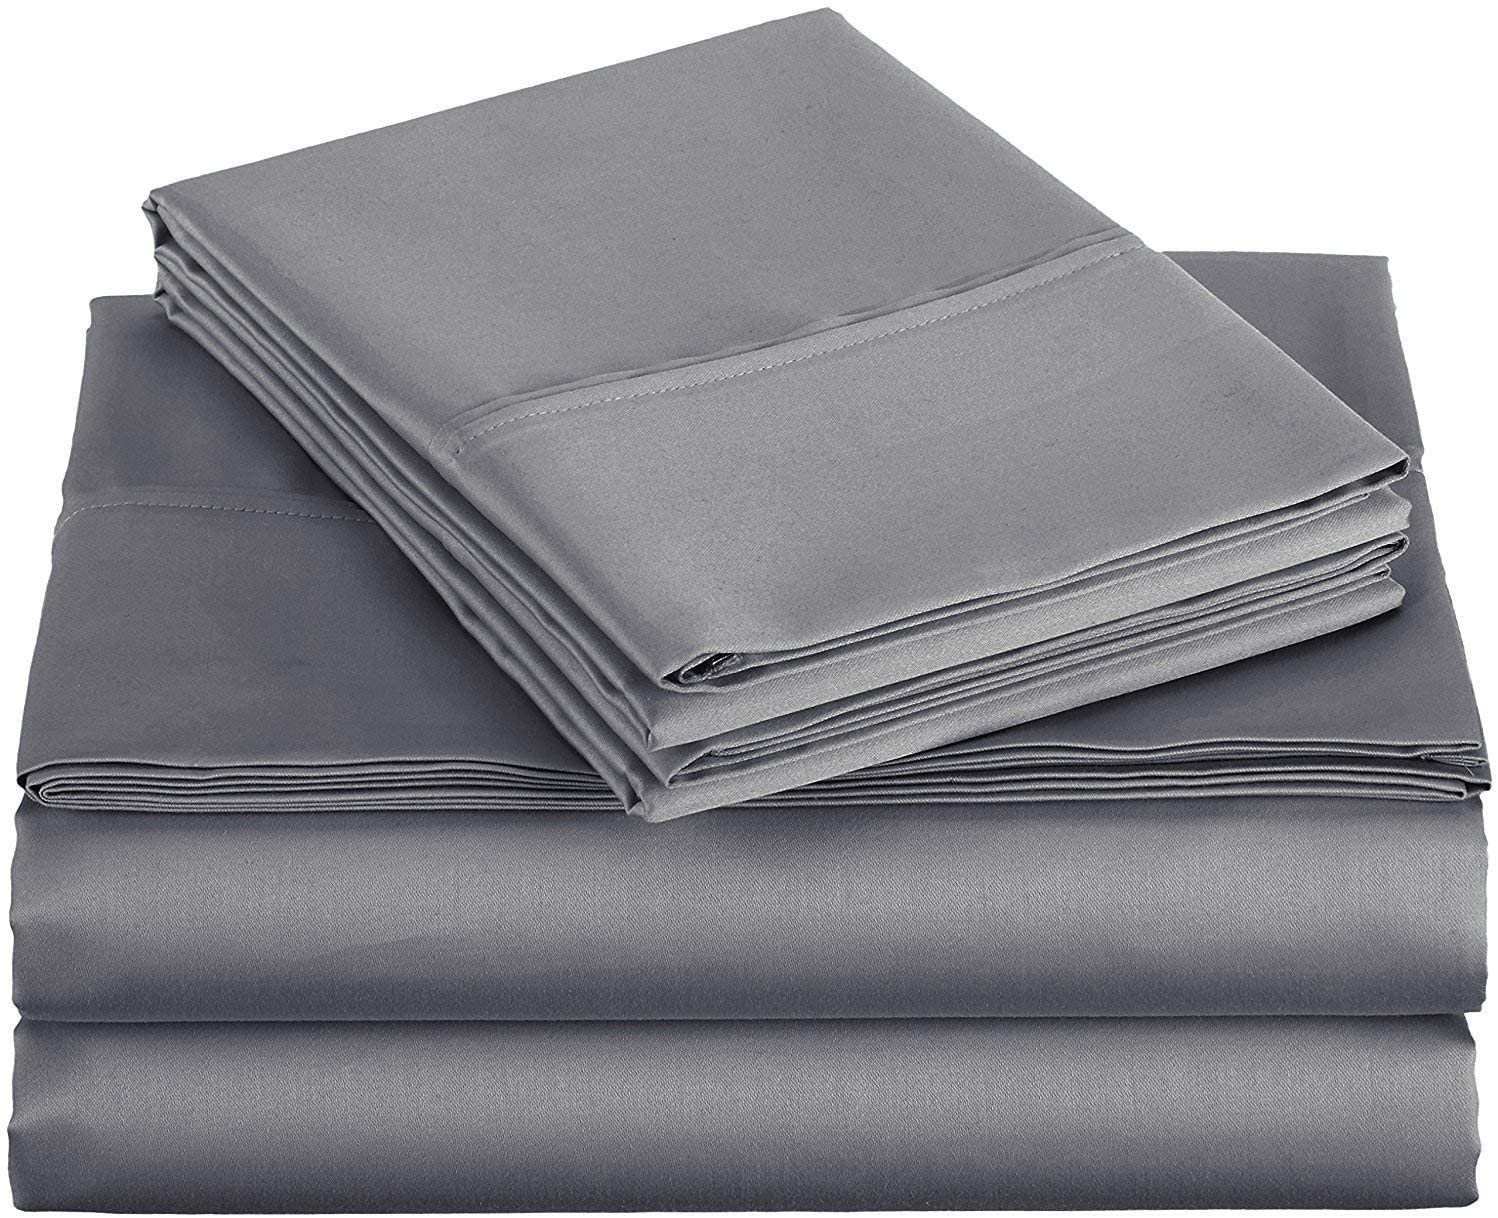 Ras Décor Linen Sheets for Motorhomes & Camper Beds,RV Sheets 72x75 Short King,Fit up to 12 Inch Deep 100% Cotton, Dark Grey - 4 Piece Sheet Set